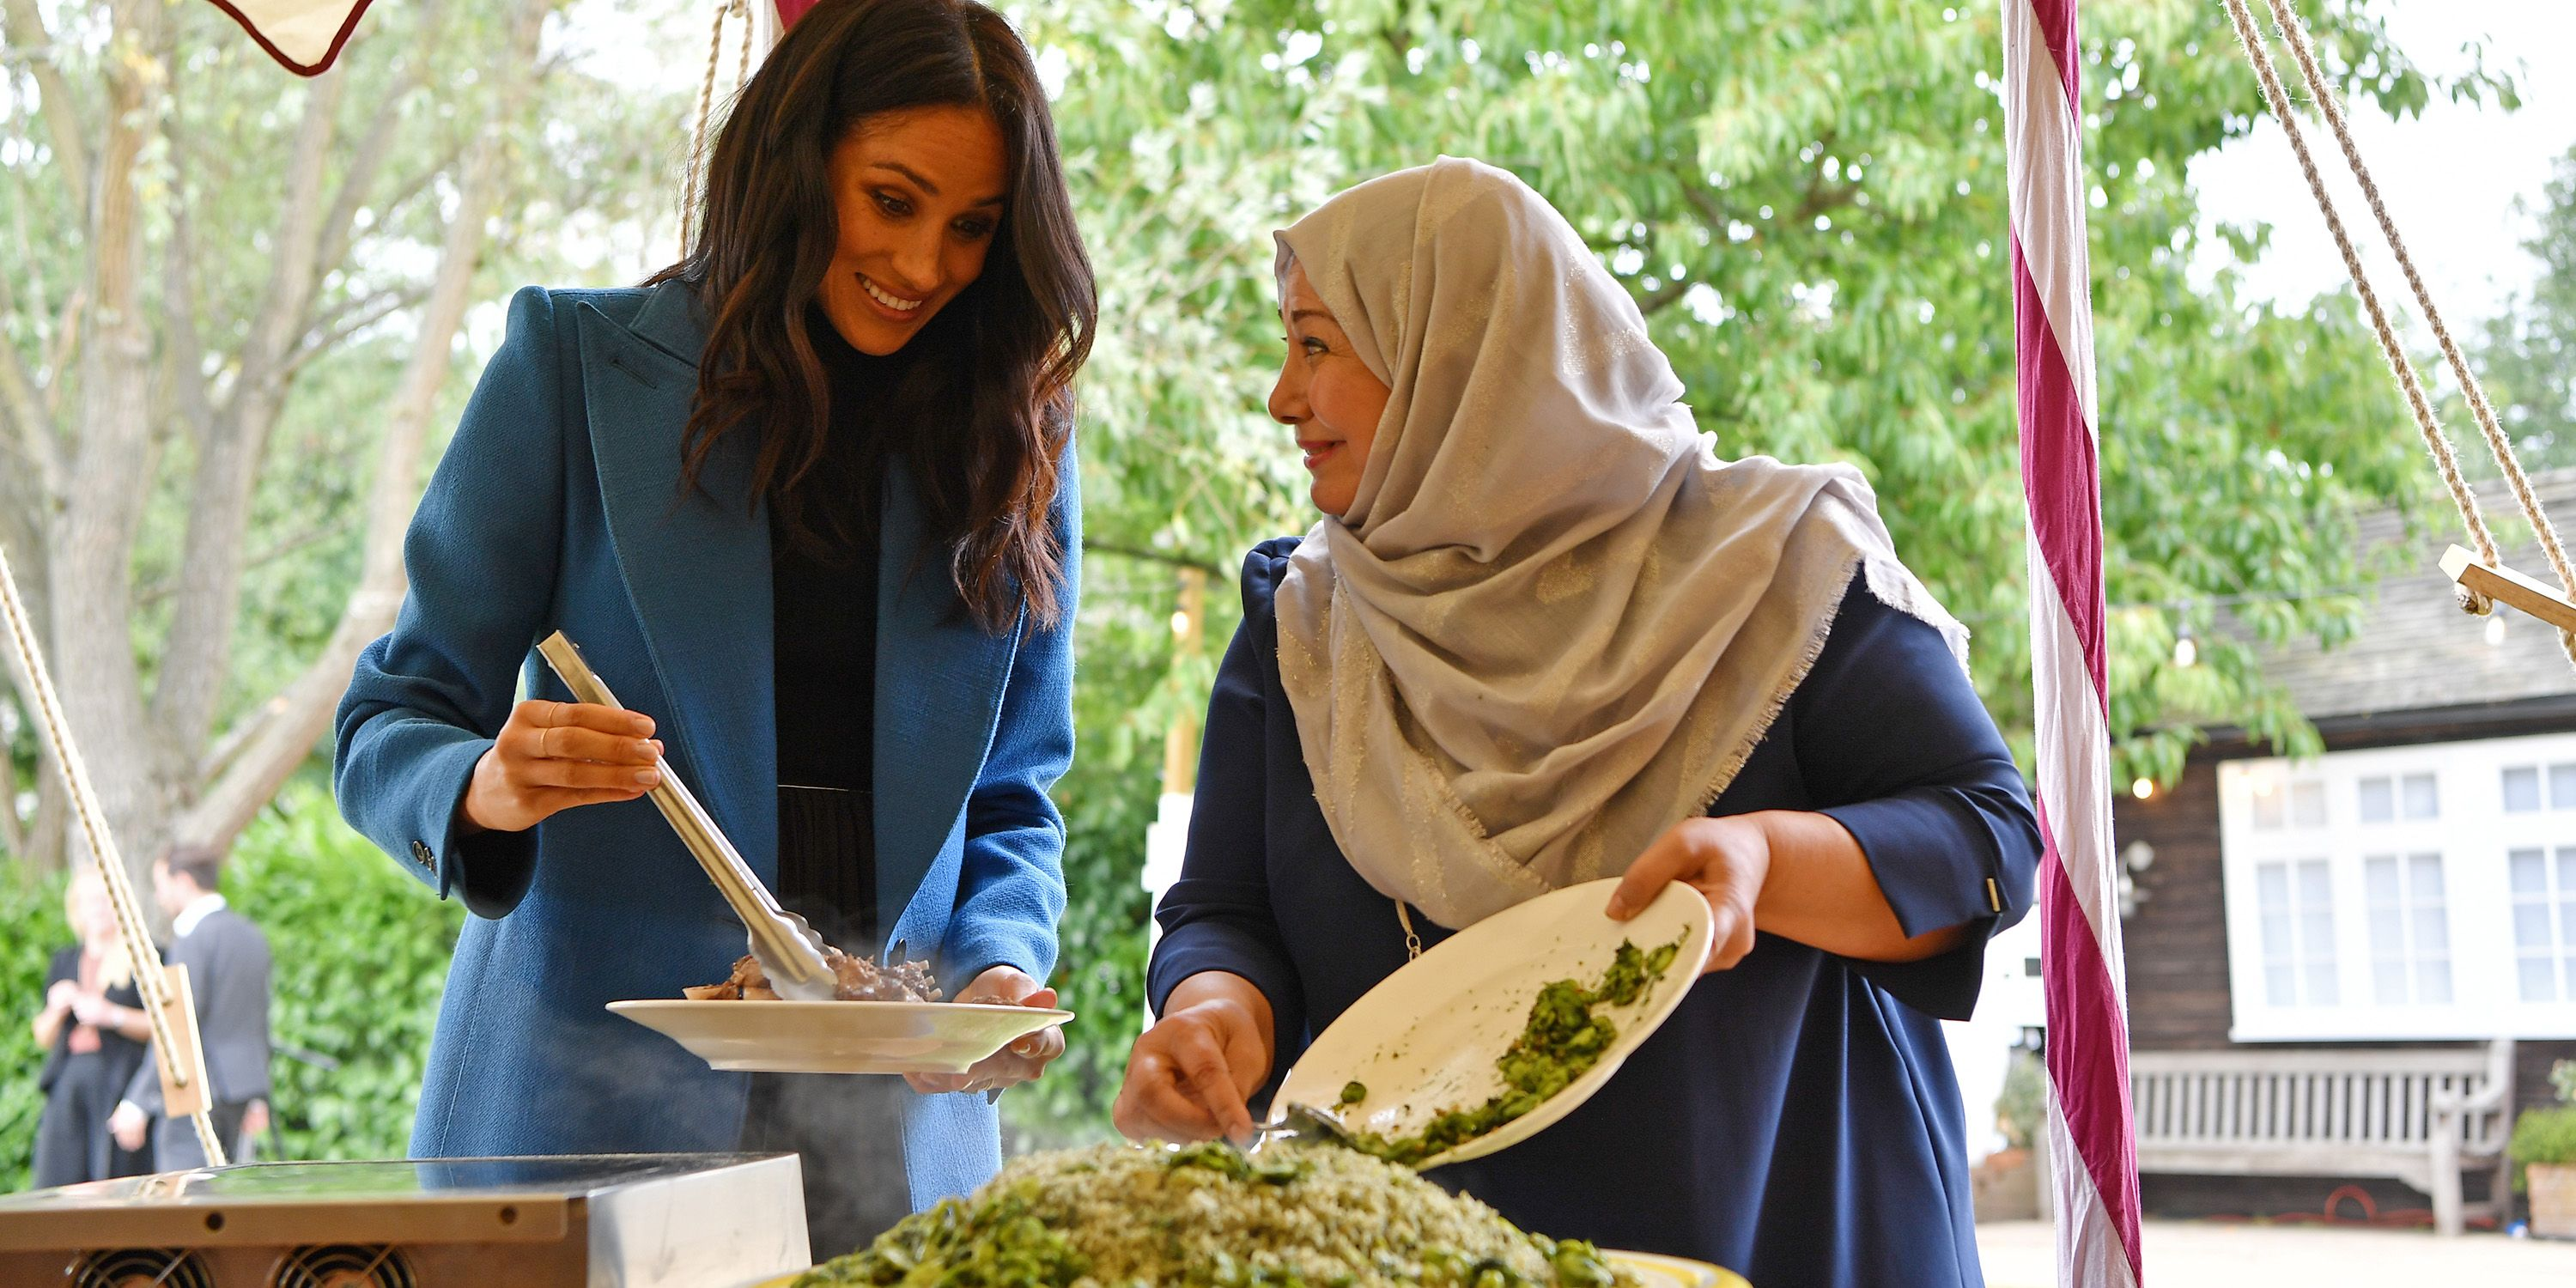 Every Photo from Meghan Markles Cookbook Launch at Kensington Palace